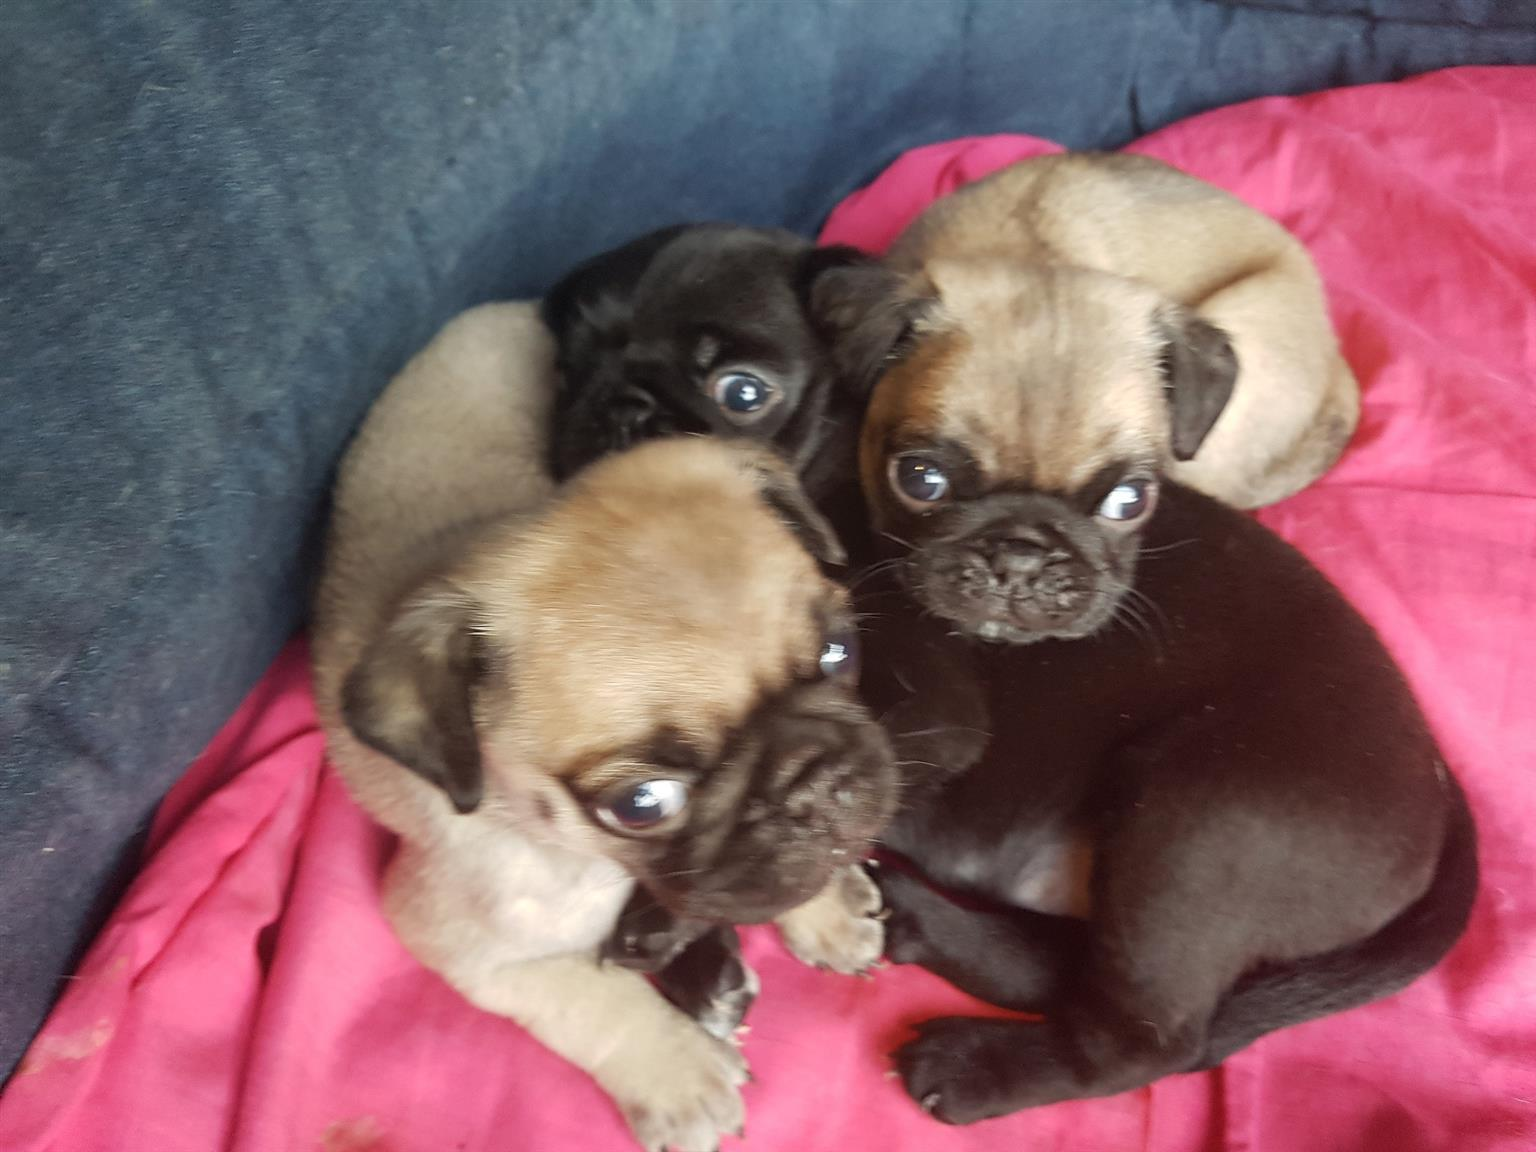 Pug puppies for sale | Junk Mail